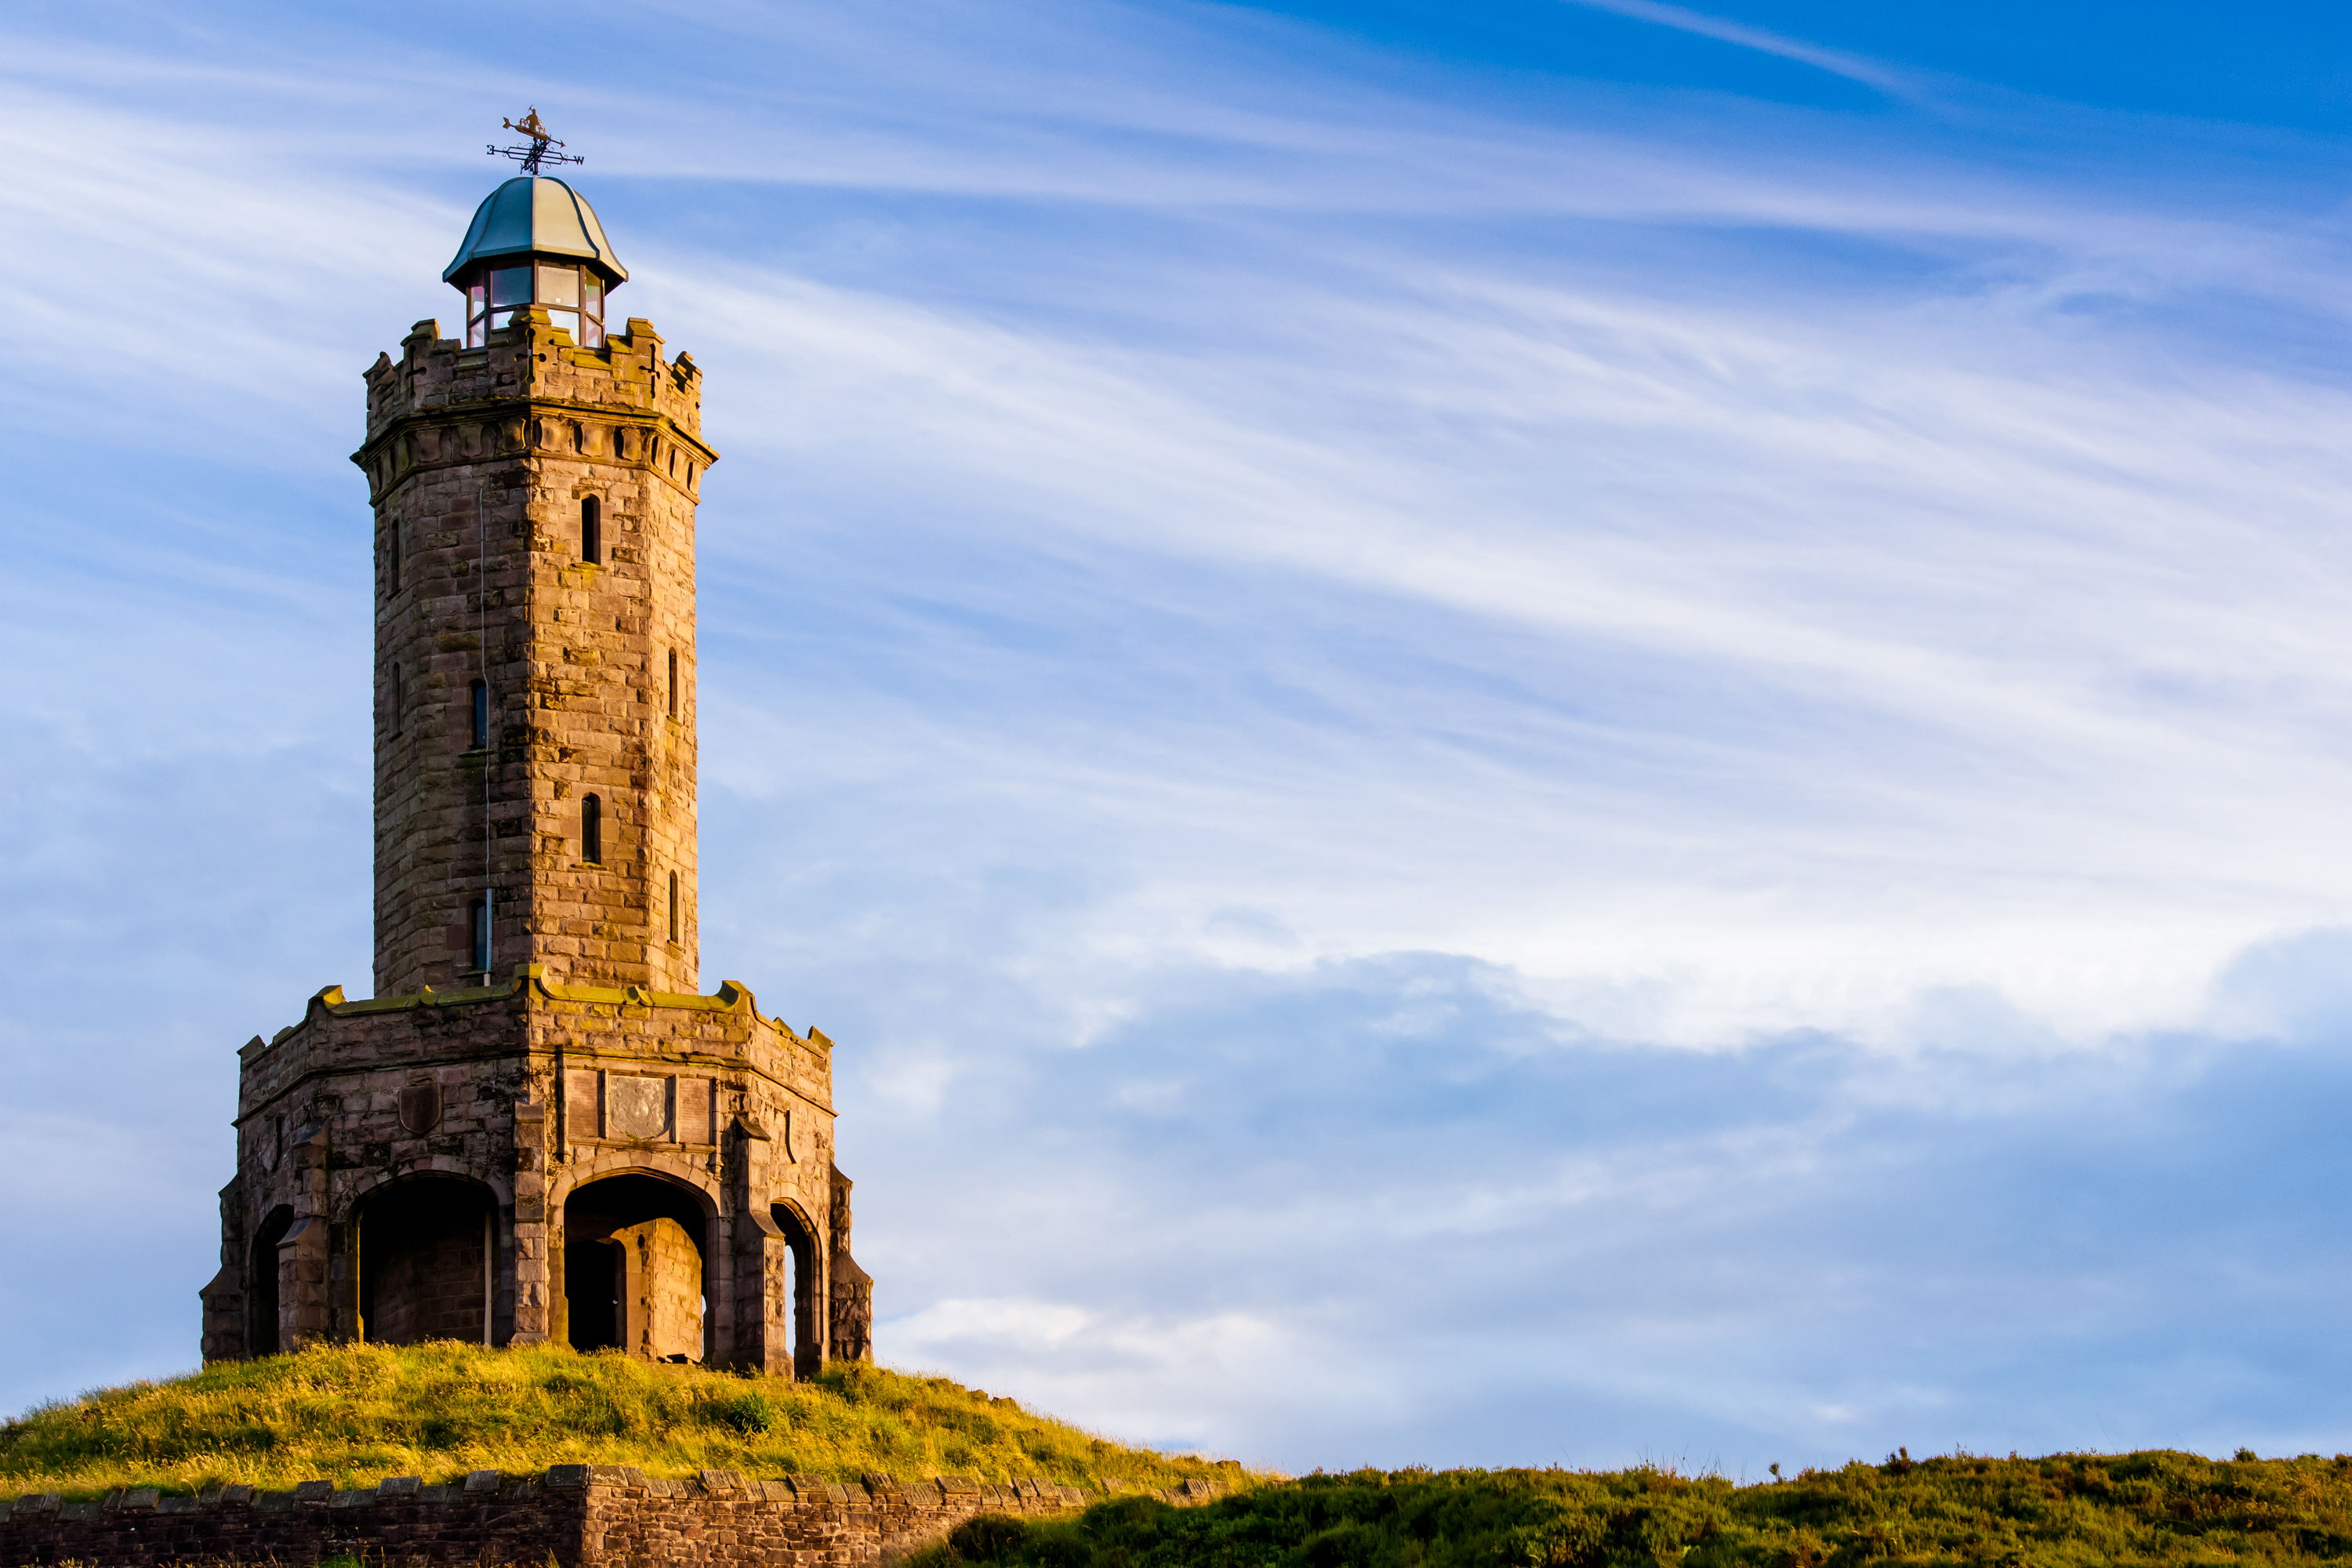 Bid to repair Darwen Tower